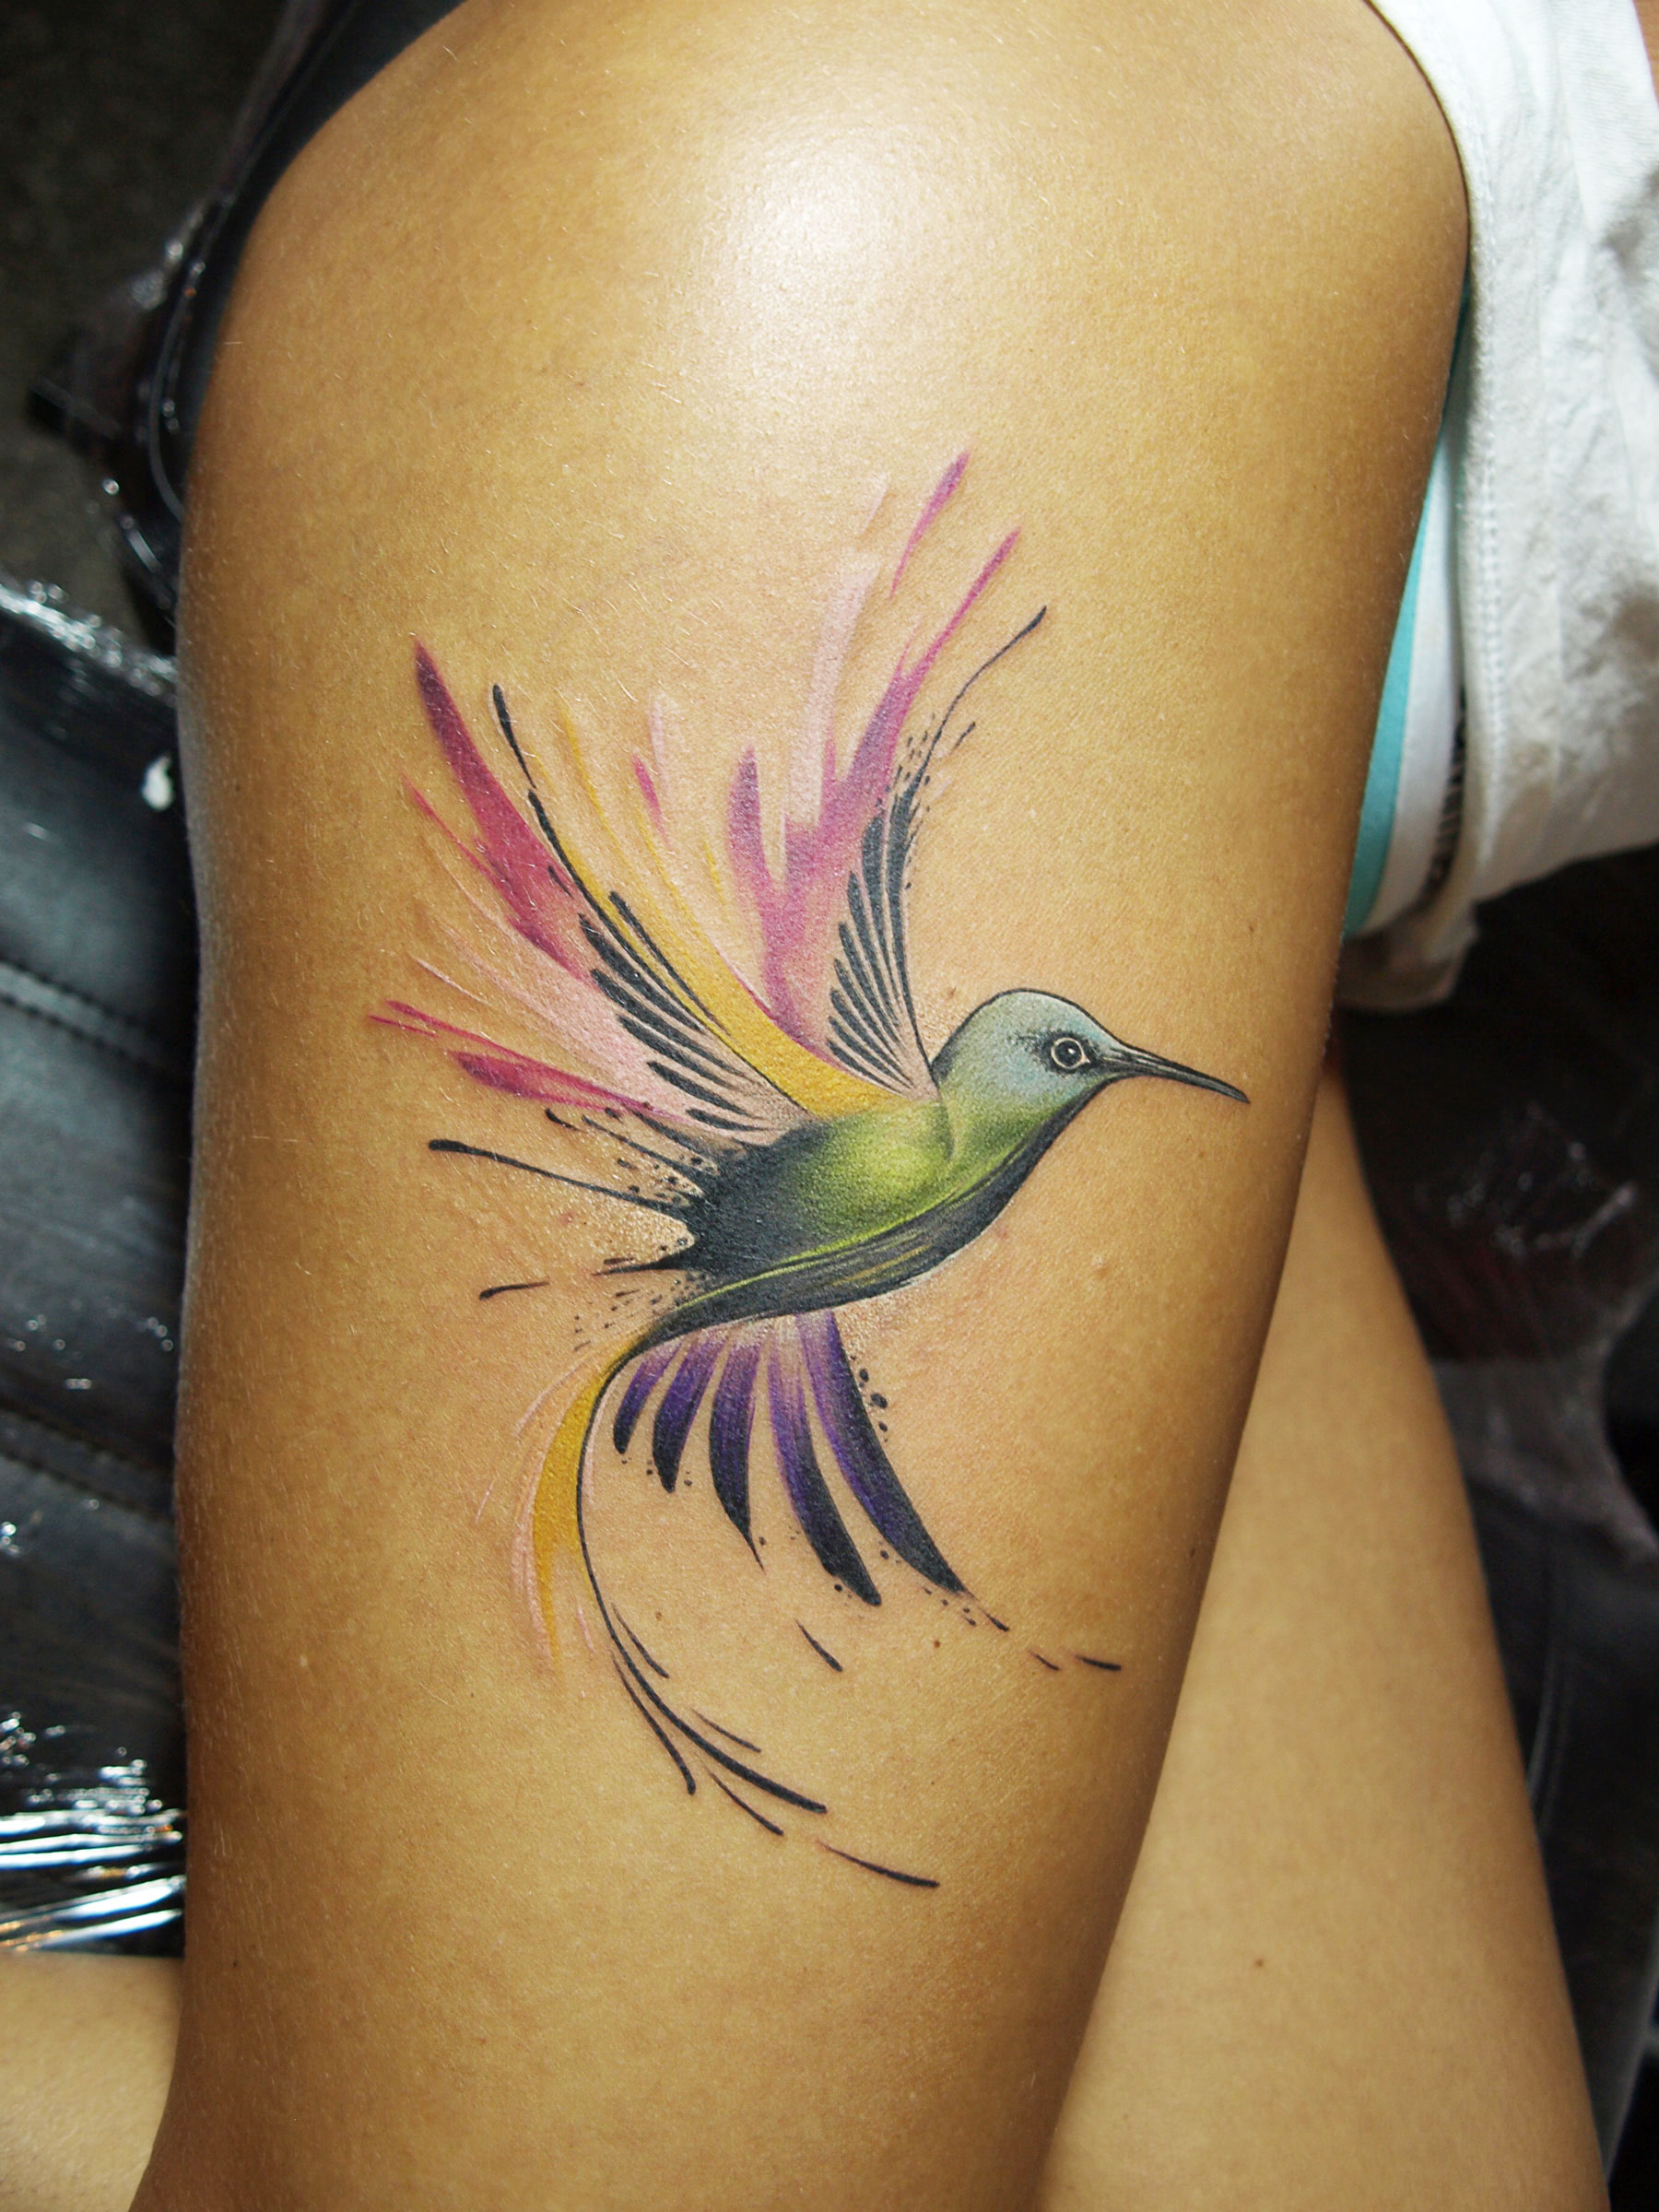 sorn-smb-tattoo-hummingbird-watercolour-brighton.jpg